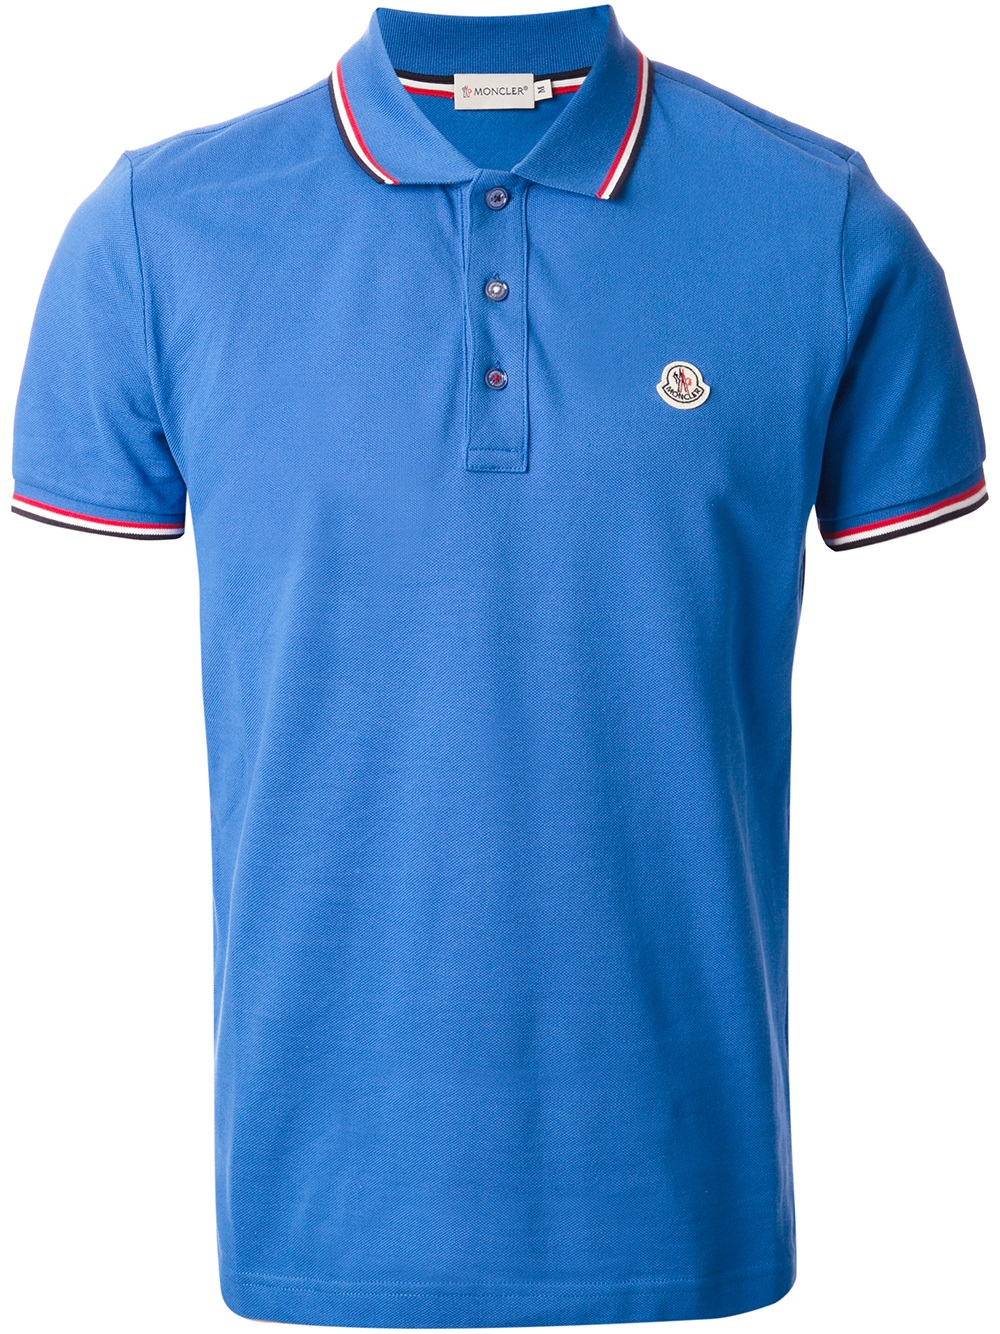 moncler blue polo shirt